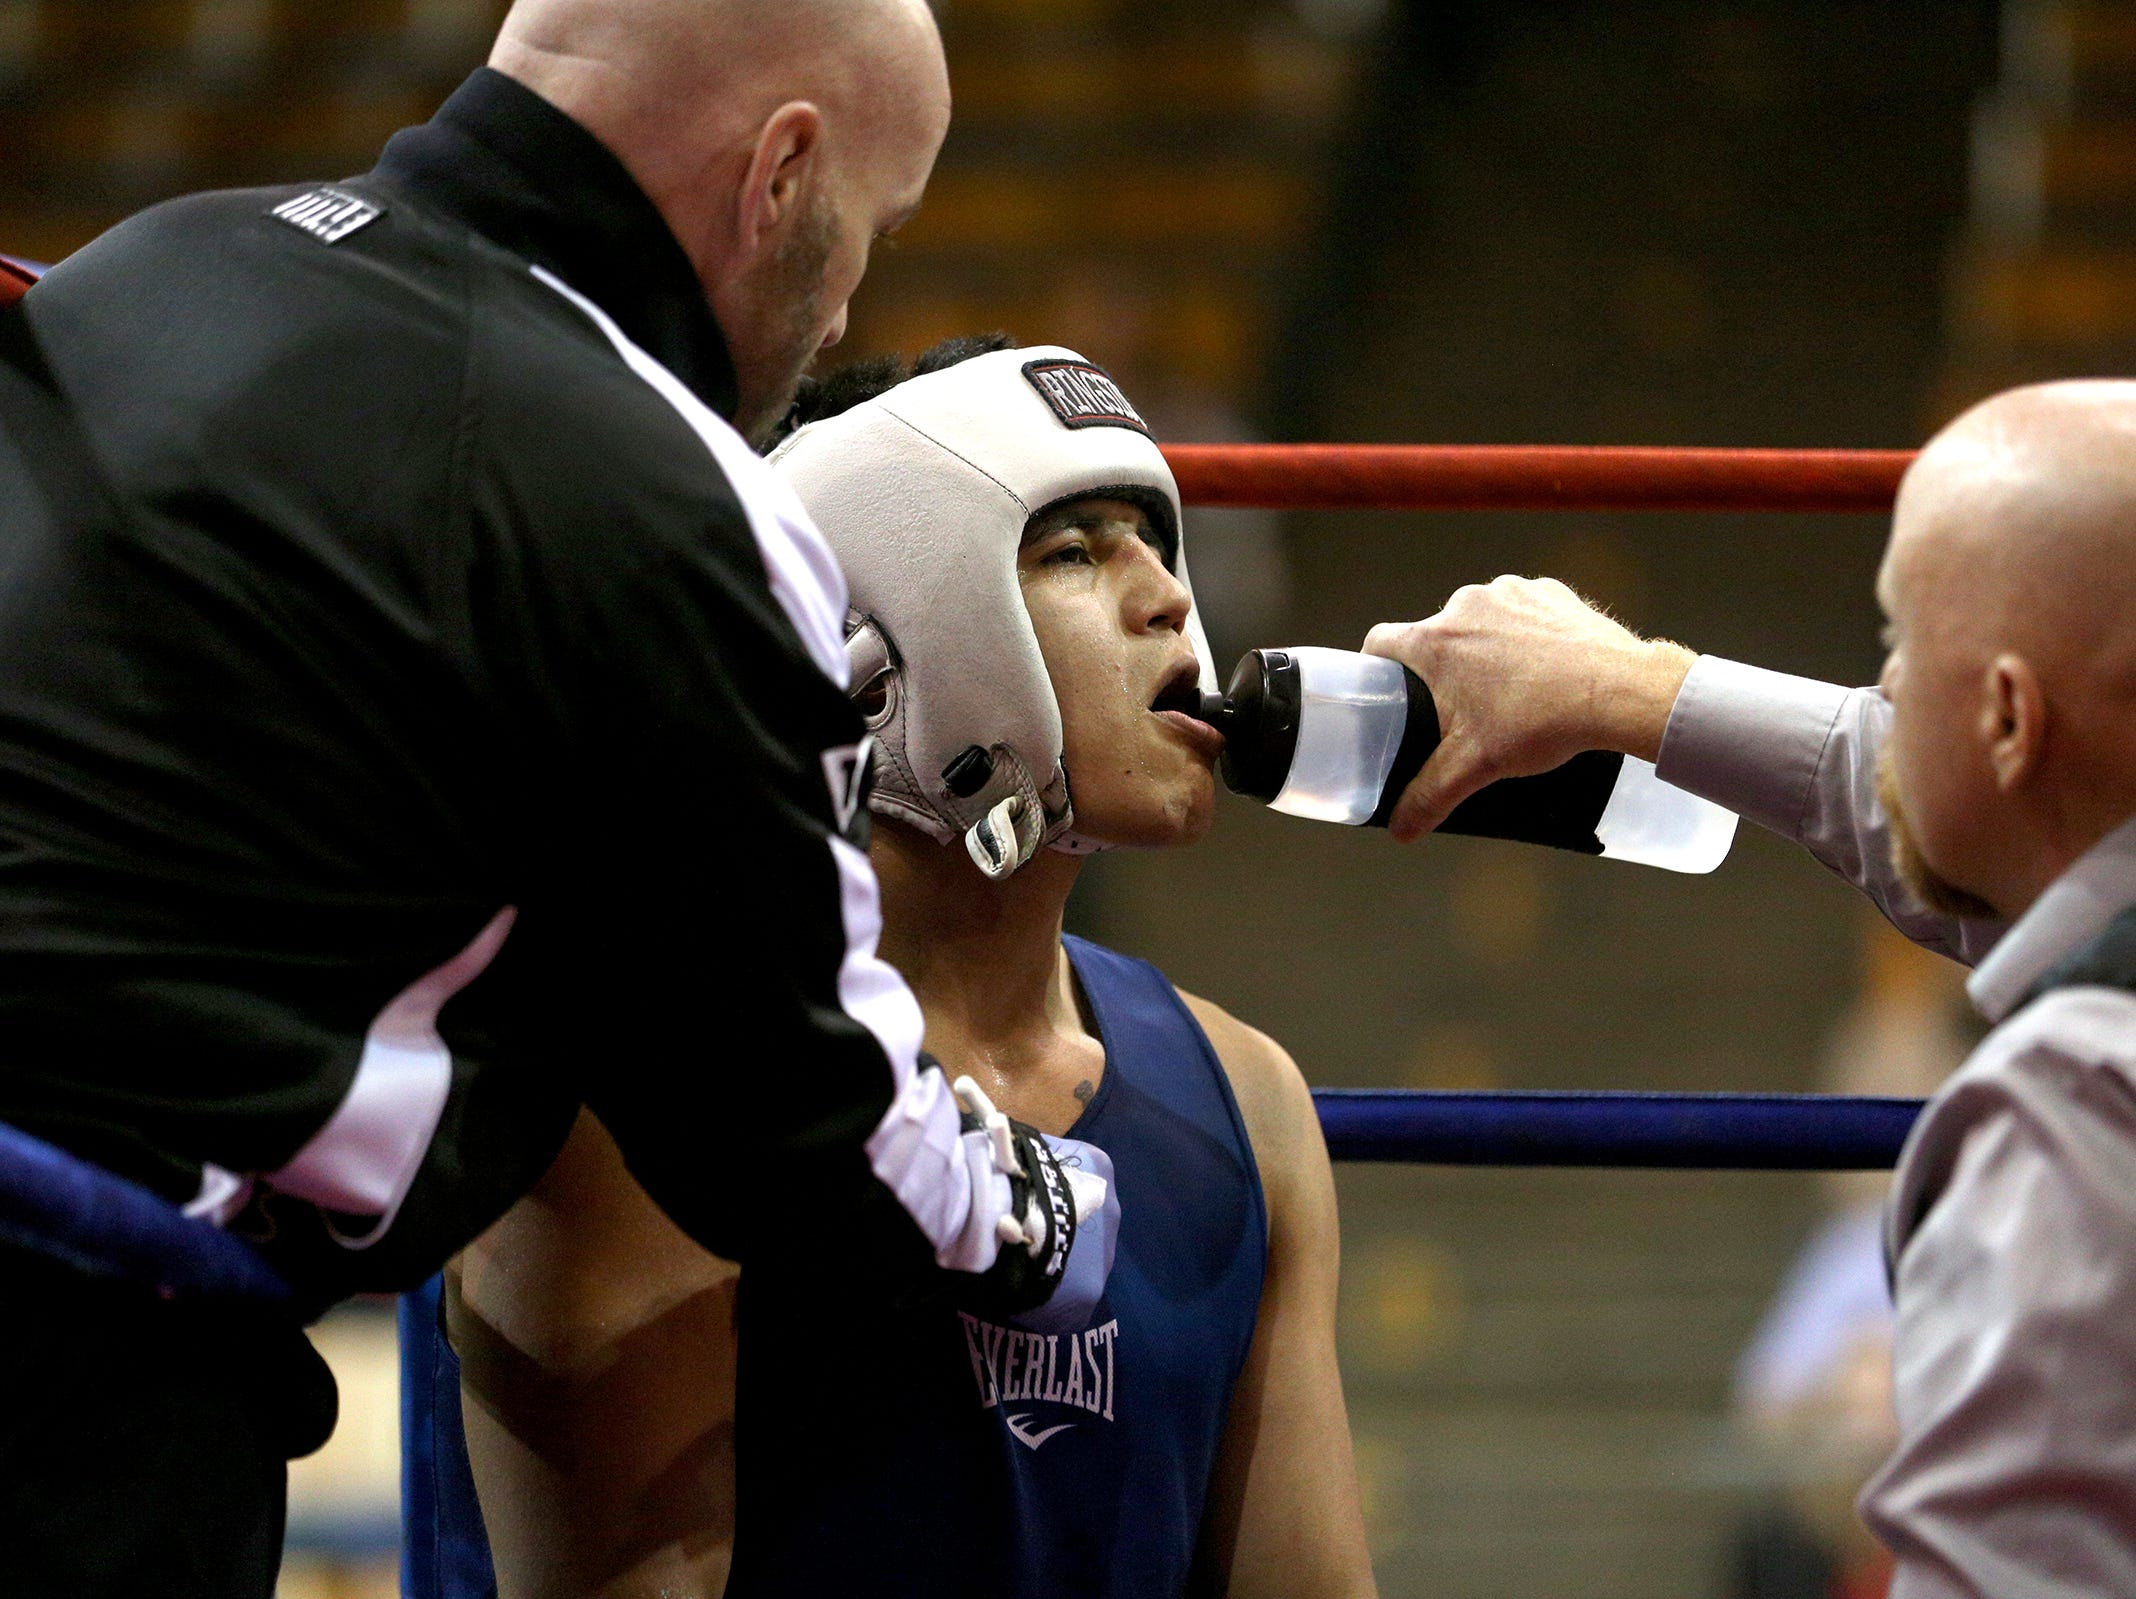 Omar Murillo of Salem takes a break with his trainer Daniel Dunn at the Oregon Golden Gloves championship matches at the Salem Armory on Saturday, Feb. 2, 2019.